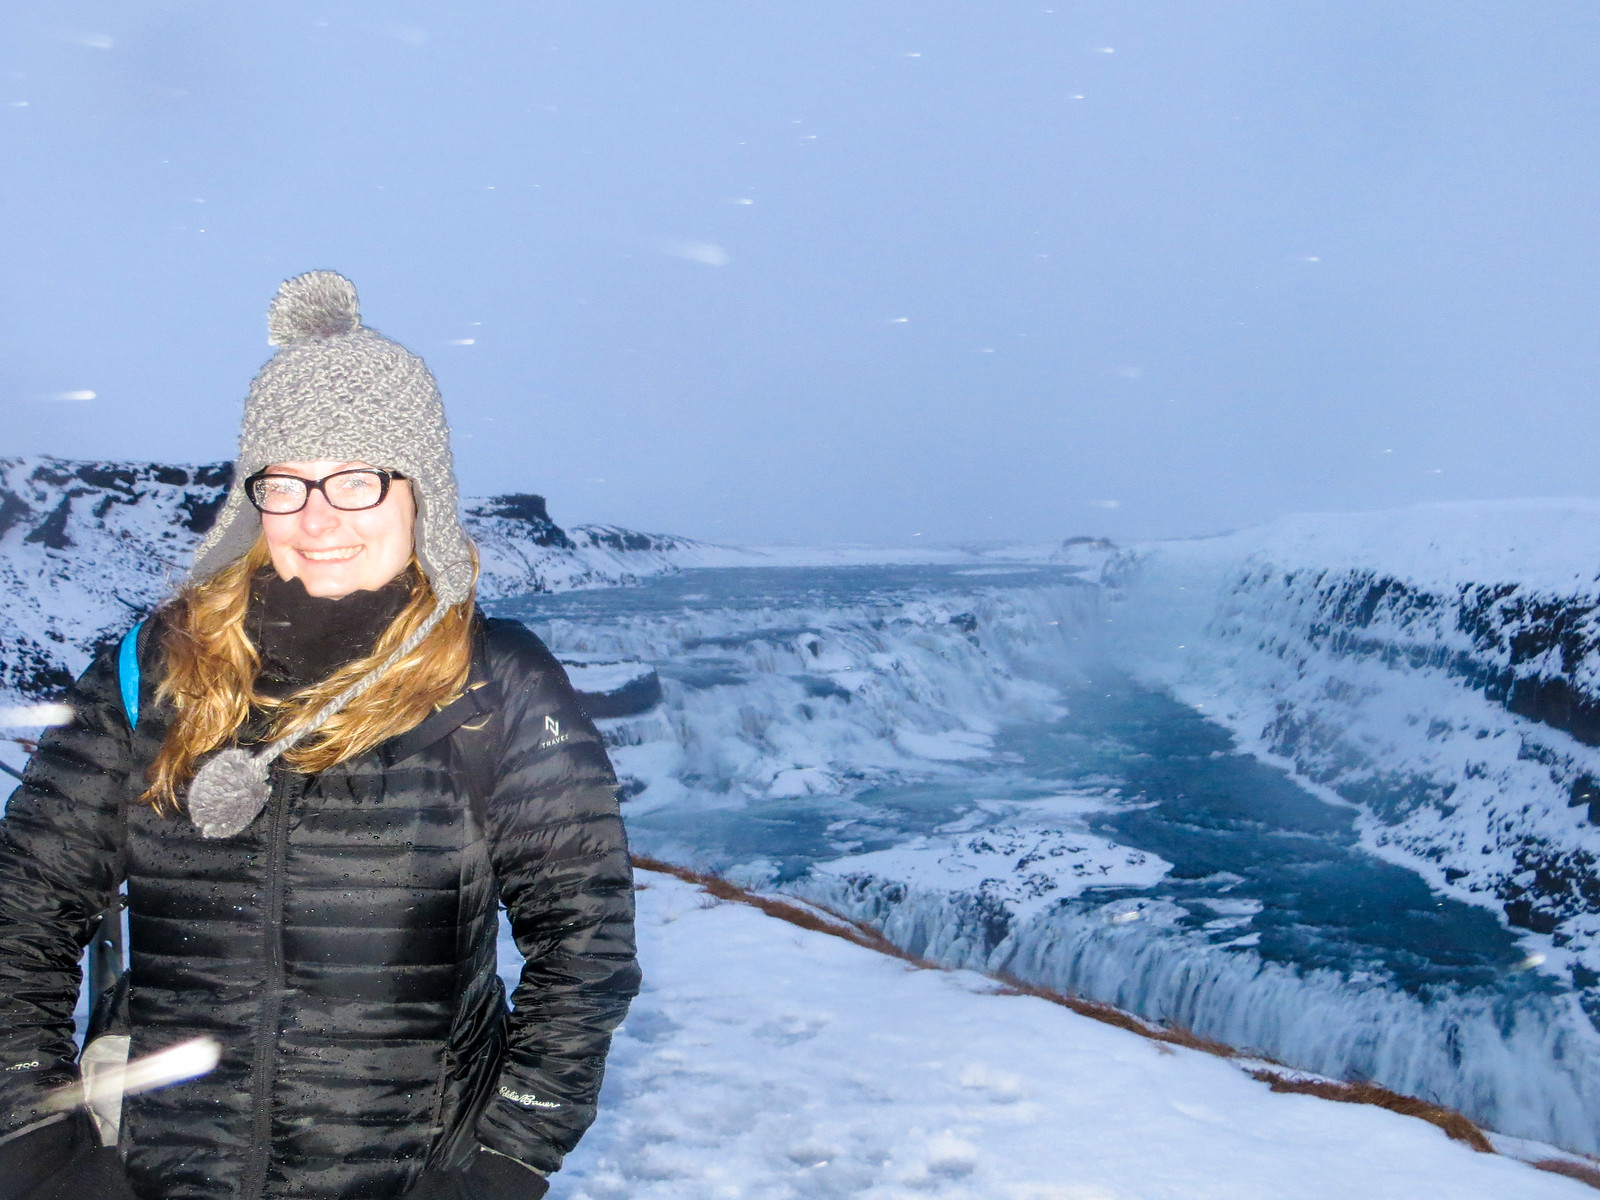 travel iceland alone? go to gullfoss falls!